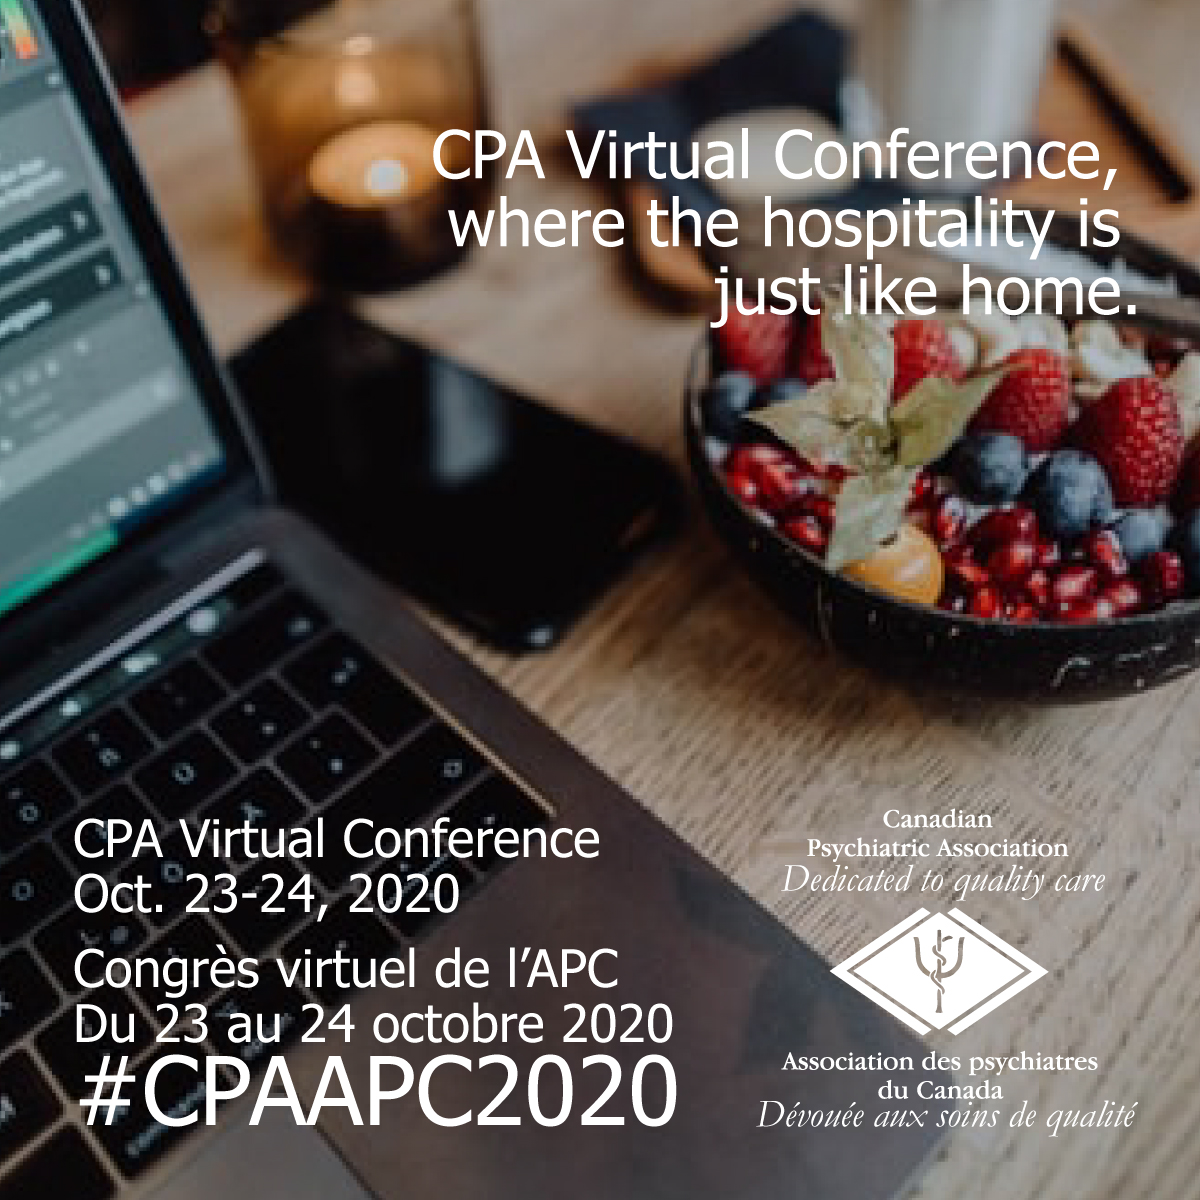 @CPA_APC Virtual Conference – Oct. 23-24, 2020:  Where the hospitality is just like home. Register Now! #CPAPC2020 #psychiatry #psychiatrie https://t.co/nZrYA2wfs0 https://t.co/gBO5x9V0eD